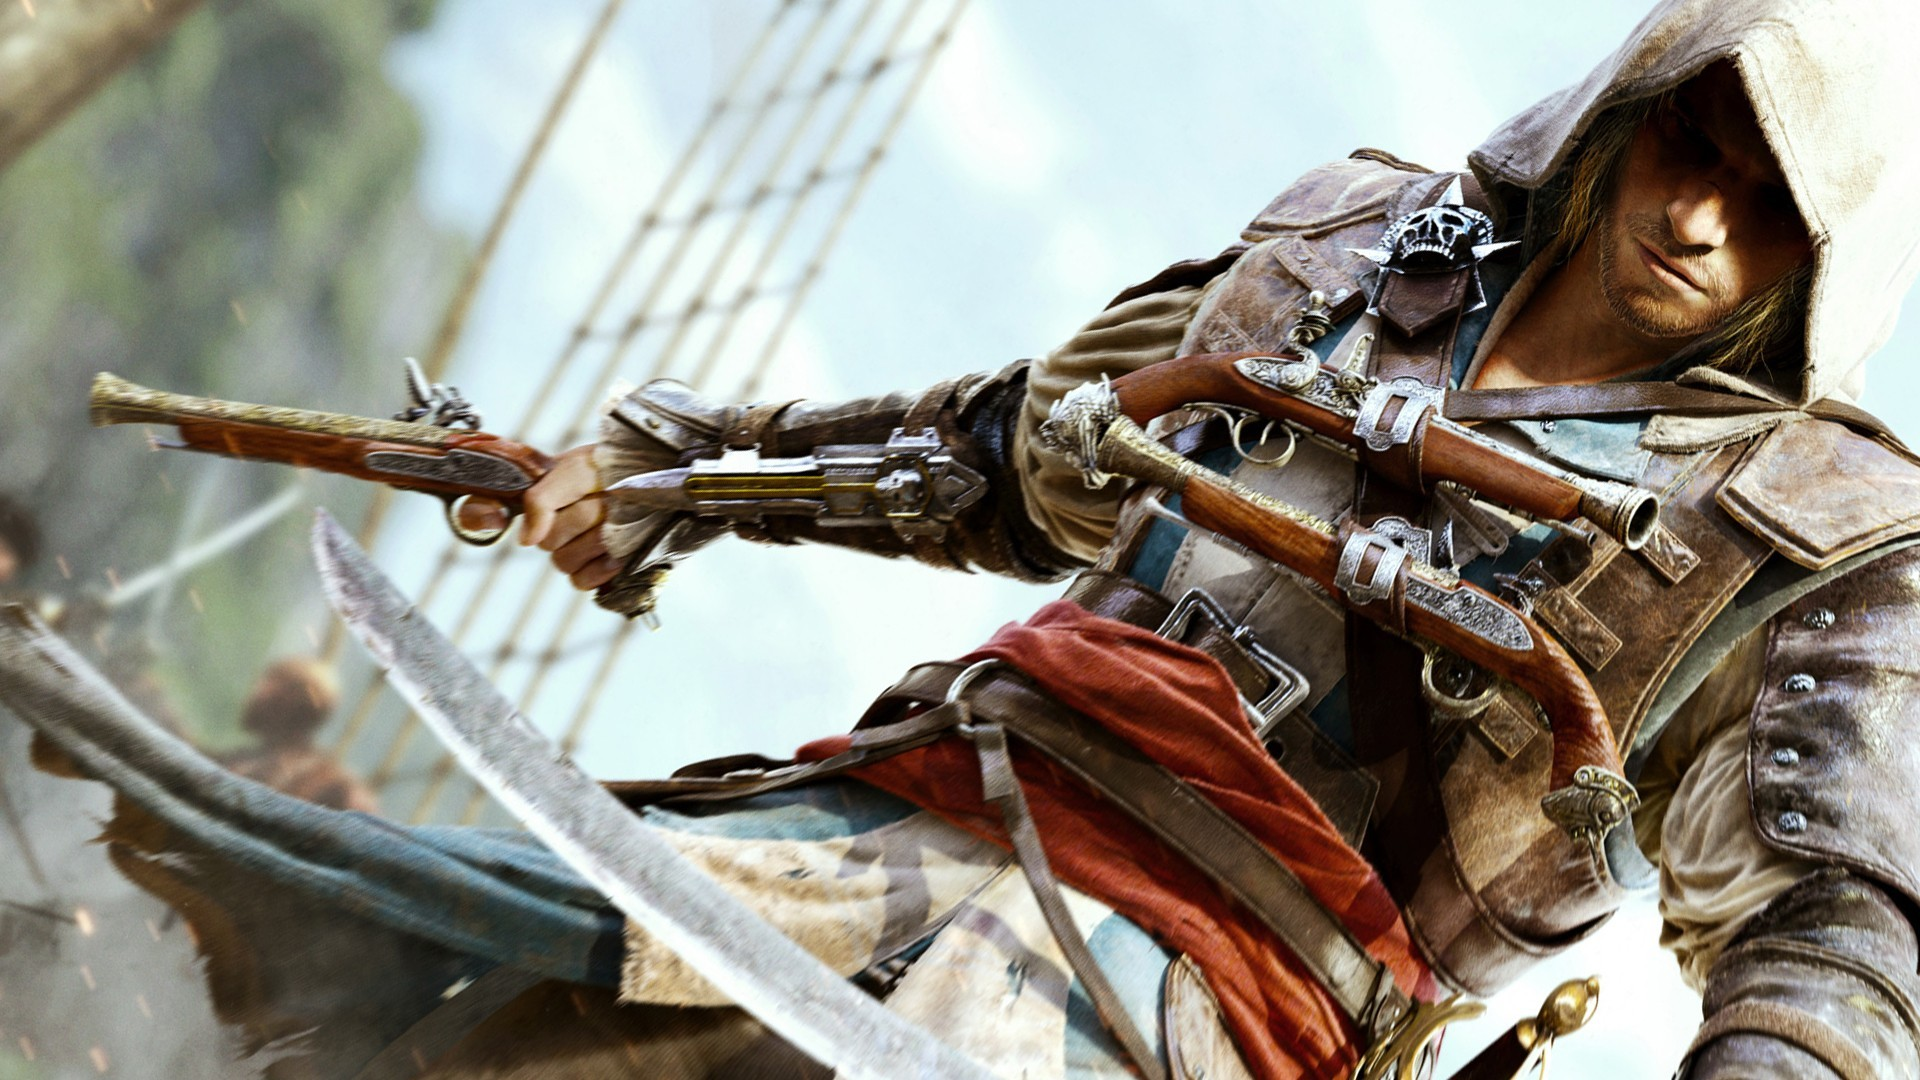 Amazoncom assassins creed Apps amp Games